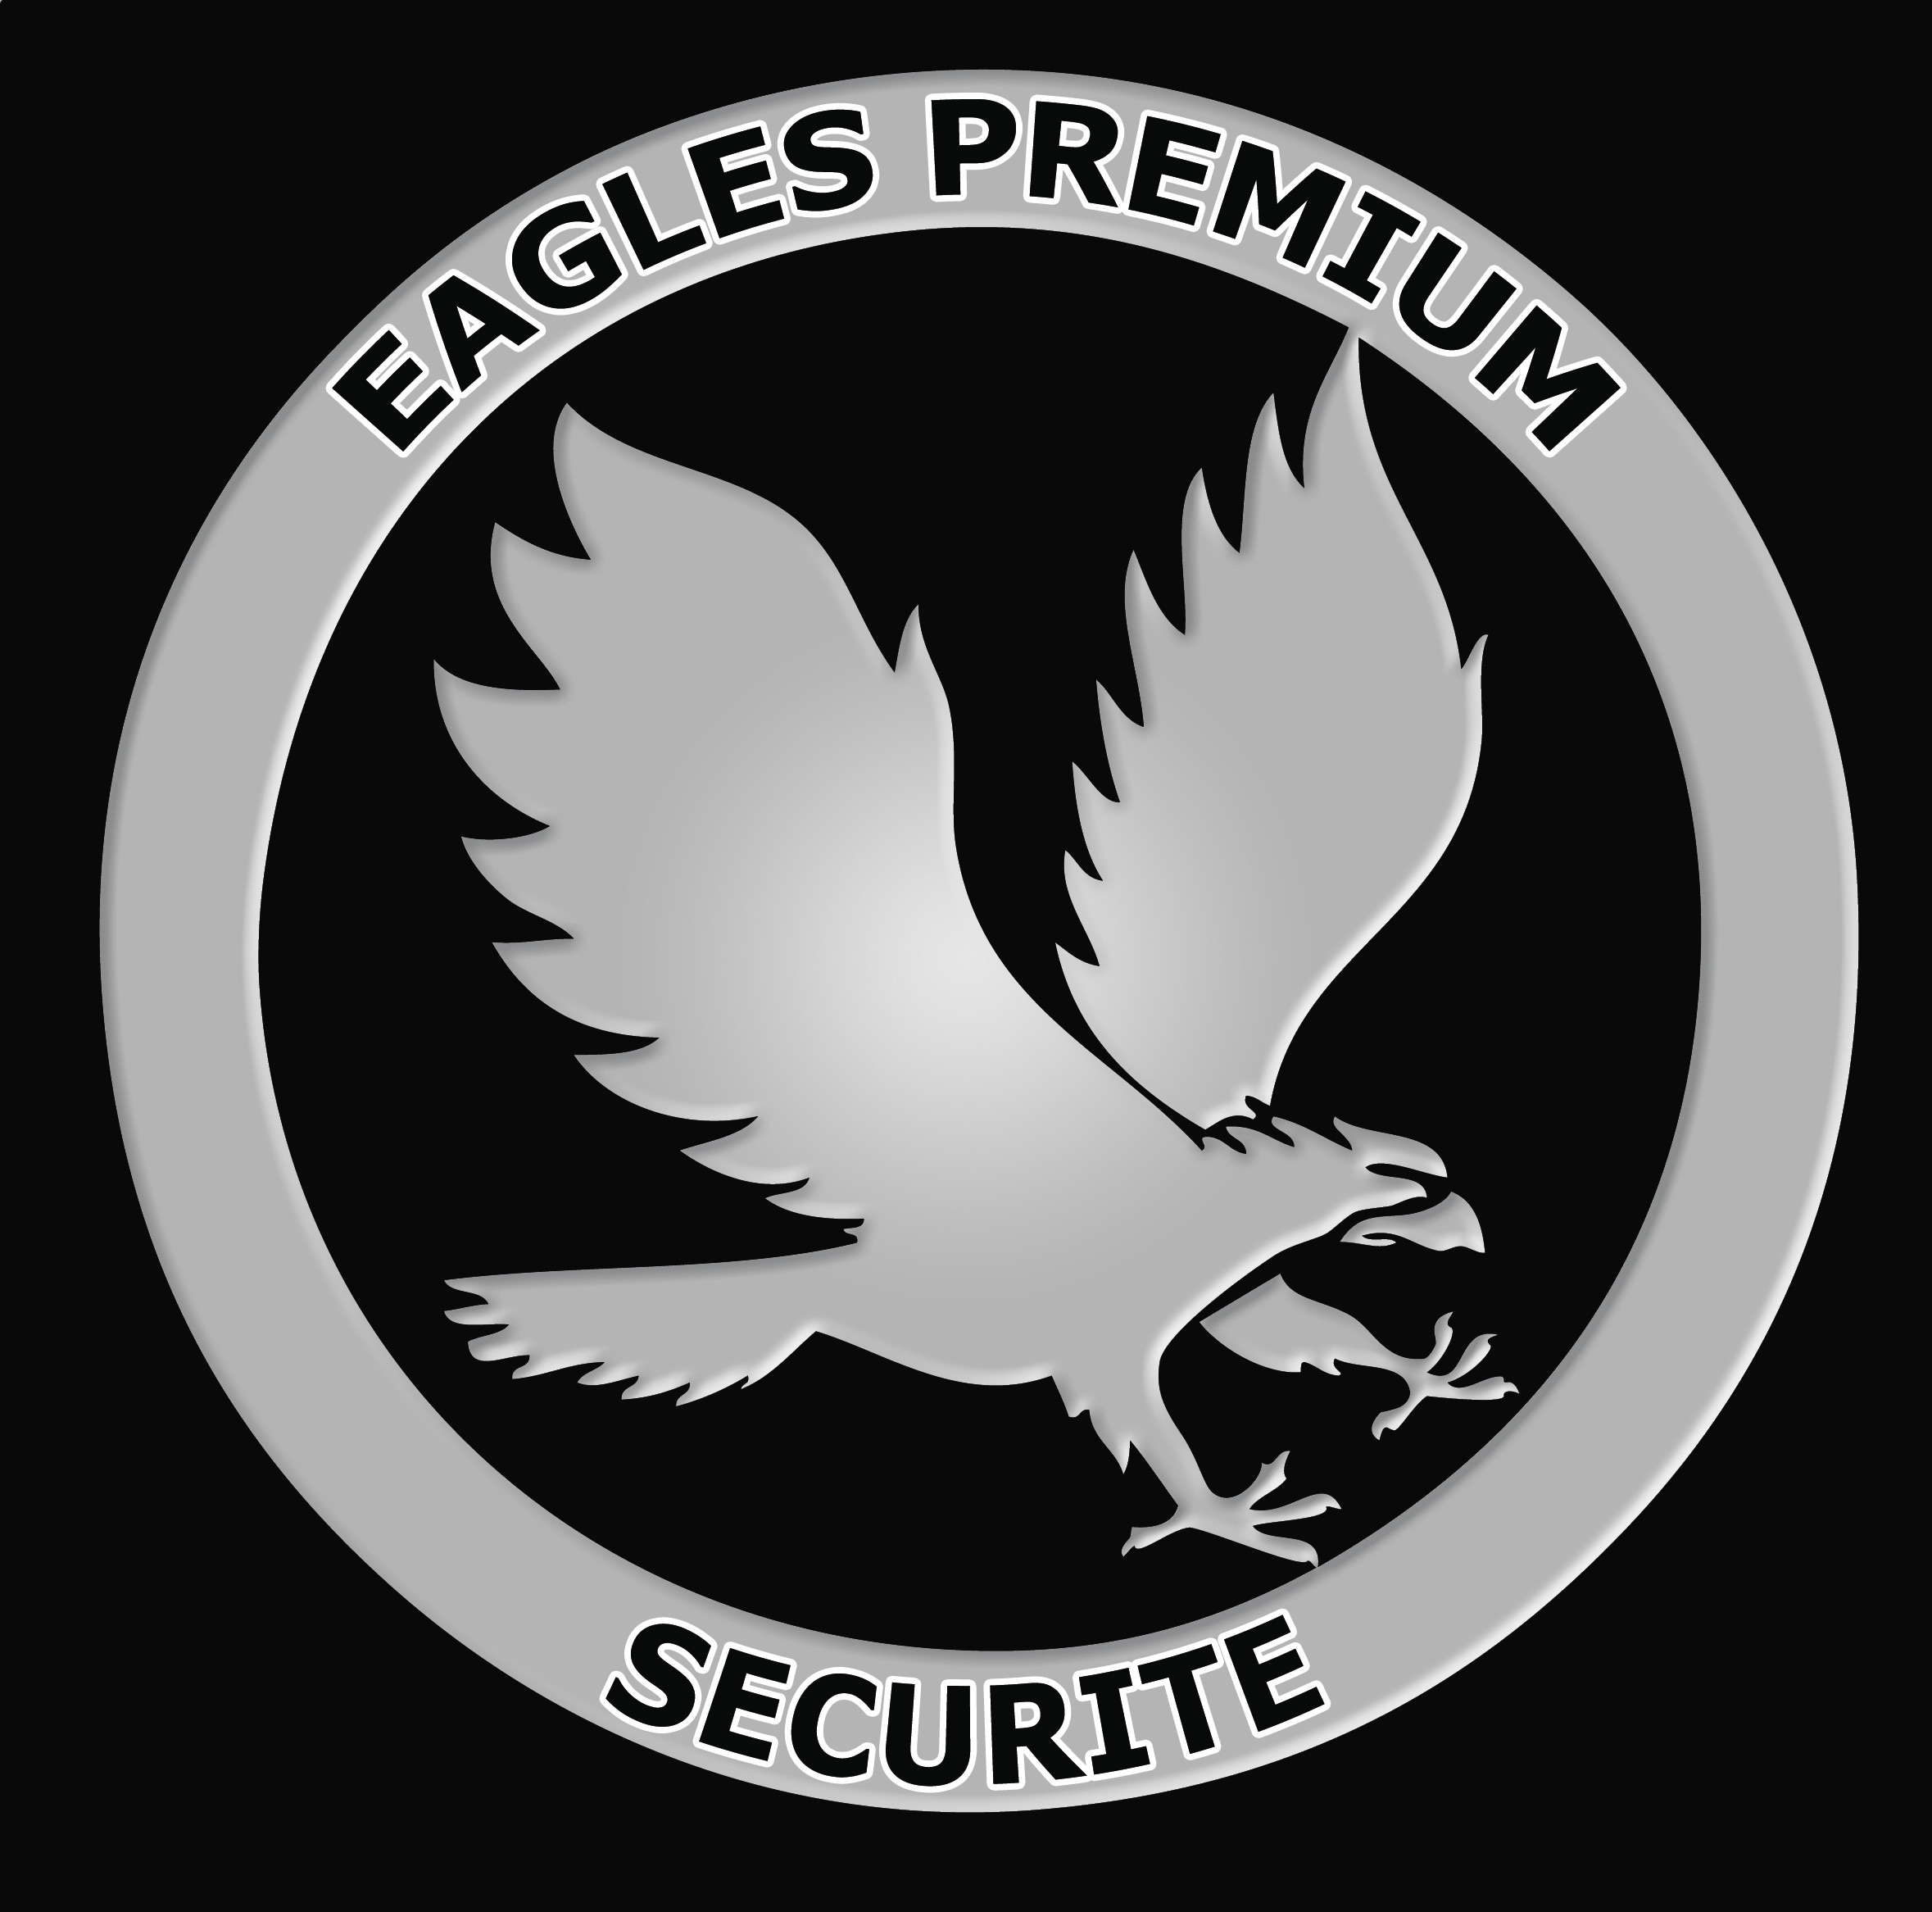 Eagles Premium Security